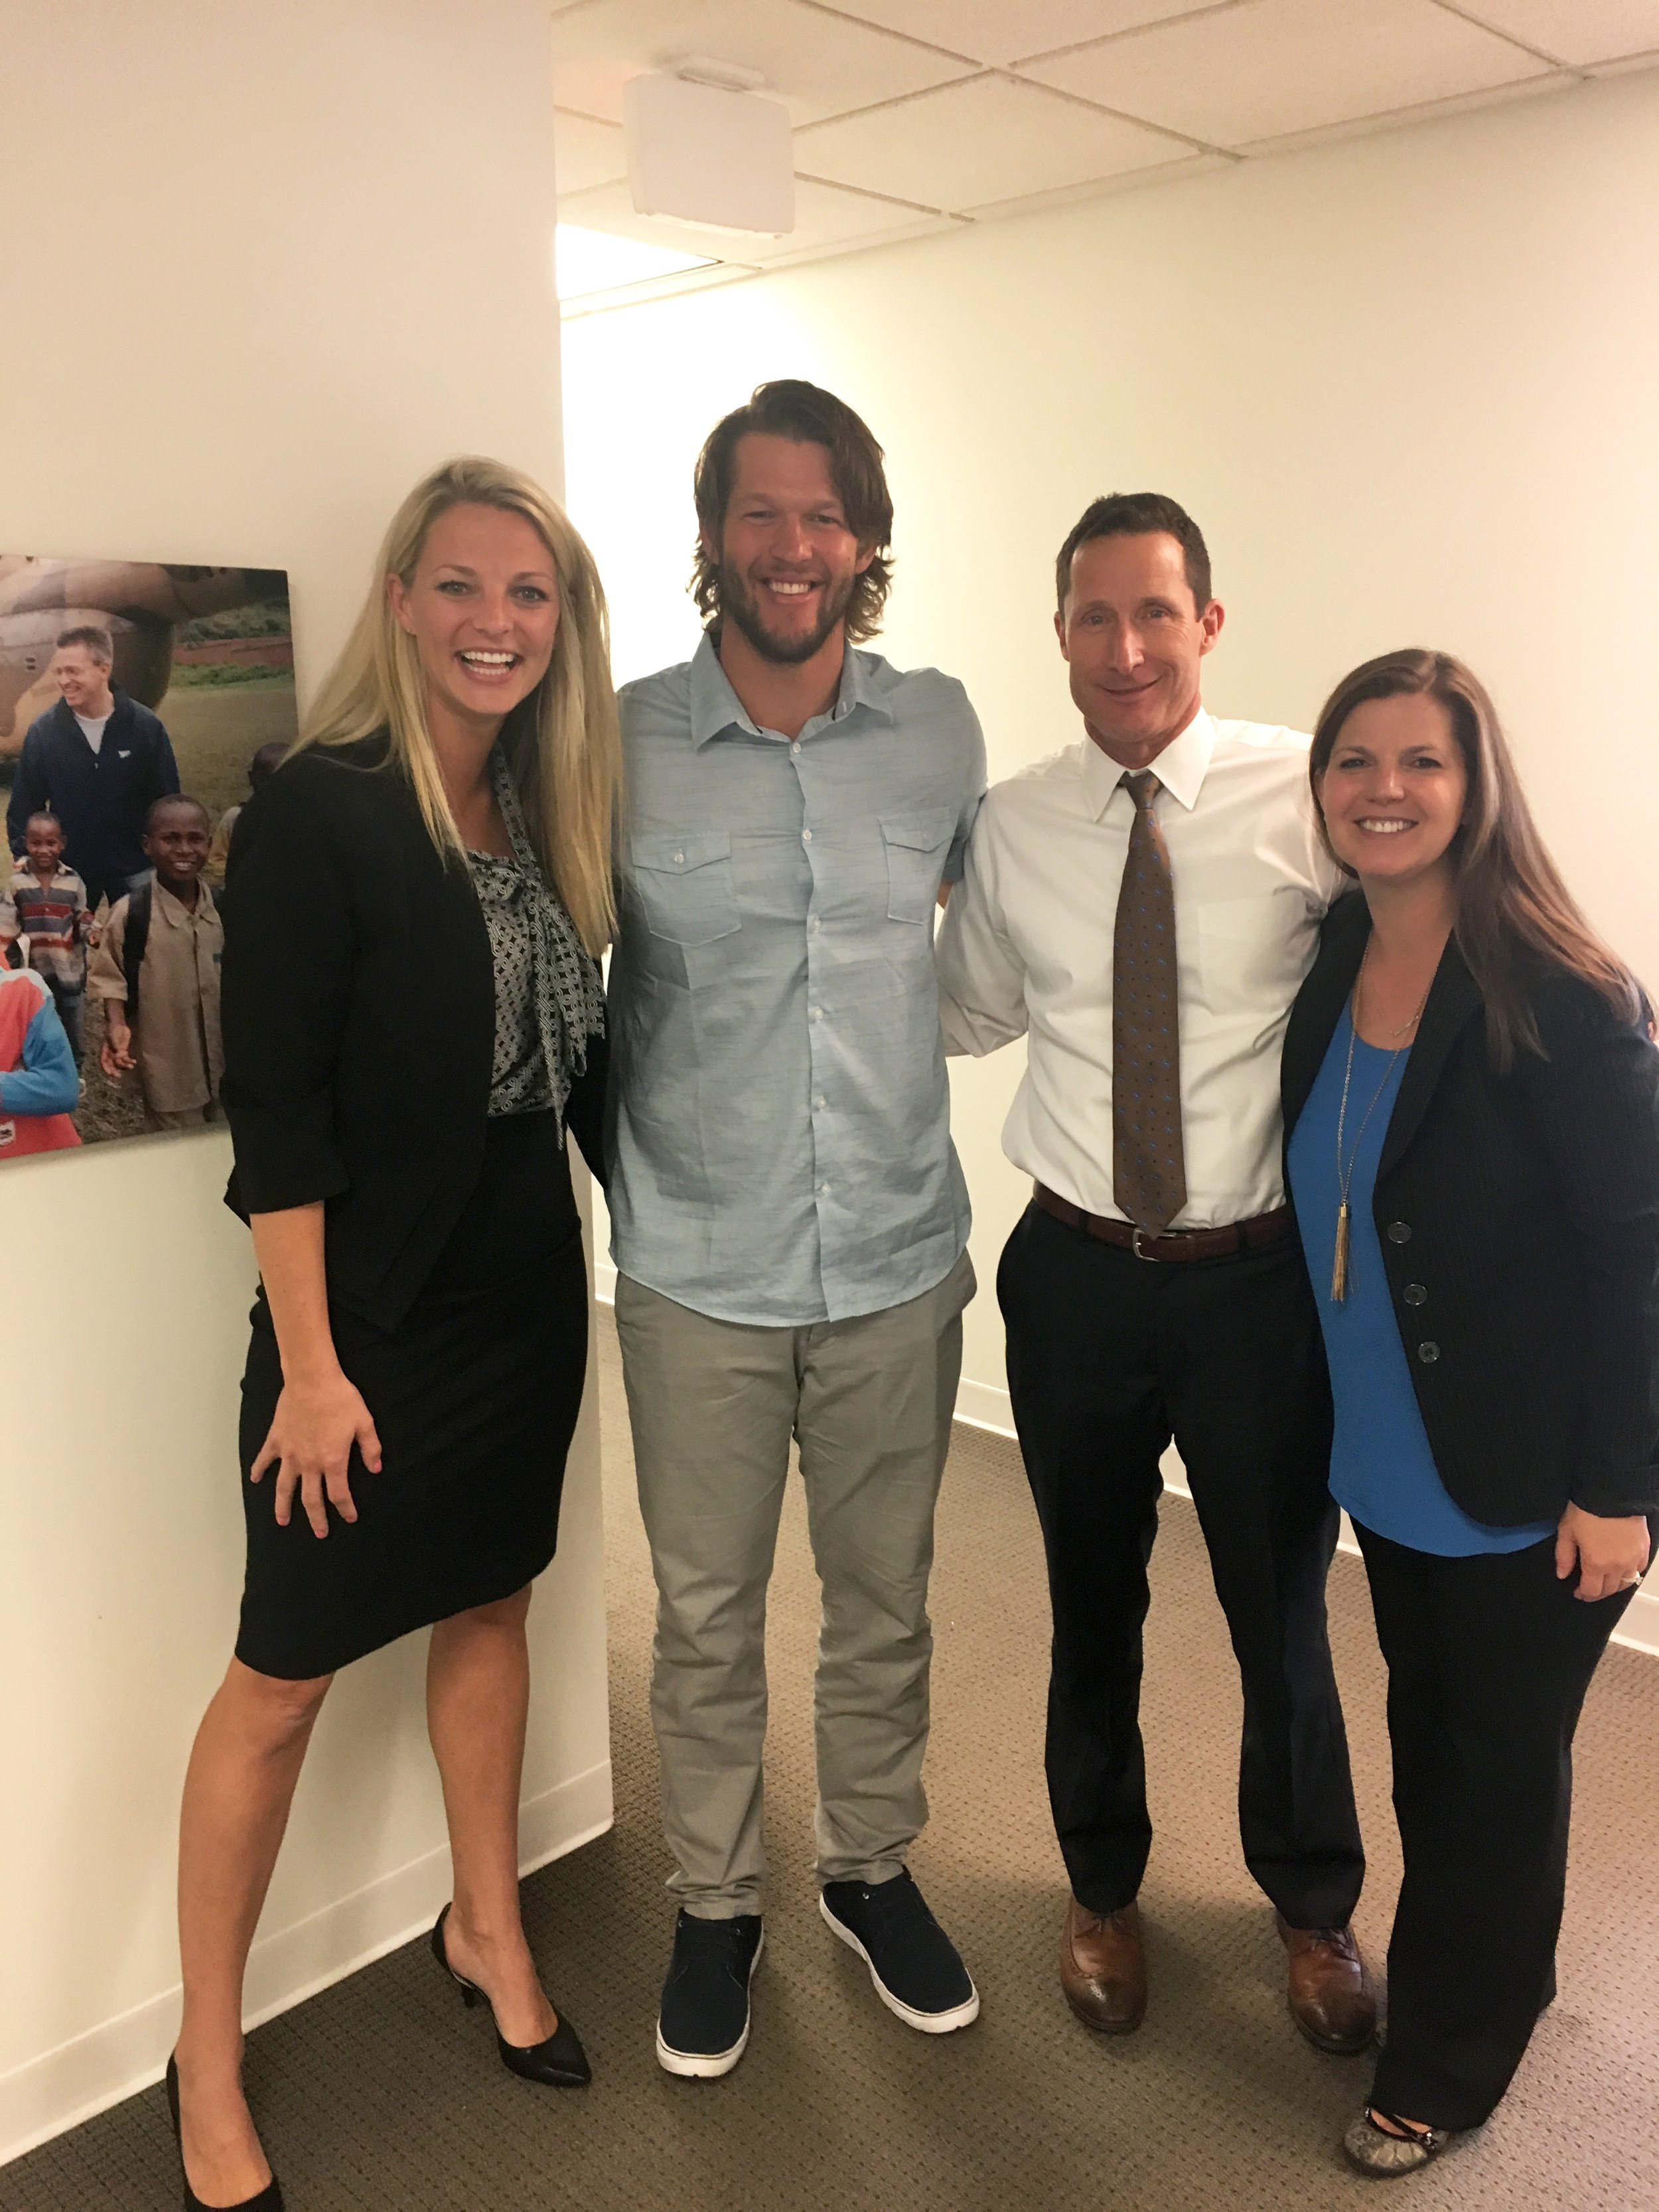 Clayton Kershaw pictured with Mallory, Sean Litton (IJM President) and Jaclyn Willert (Dir of Professional Athlete Partners and Programs) when he visited IJM's headquarters in 2017.